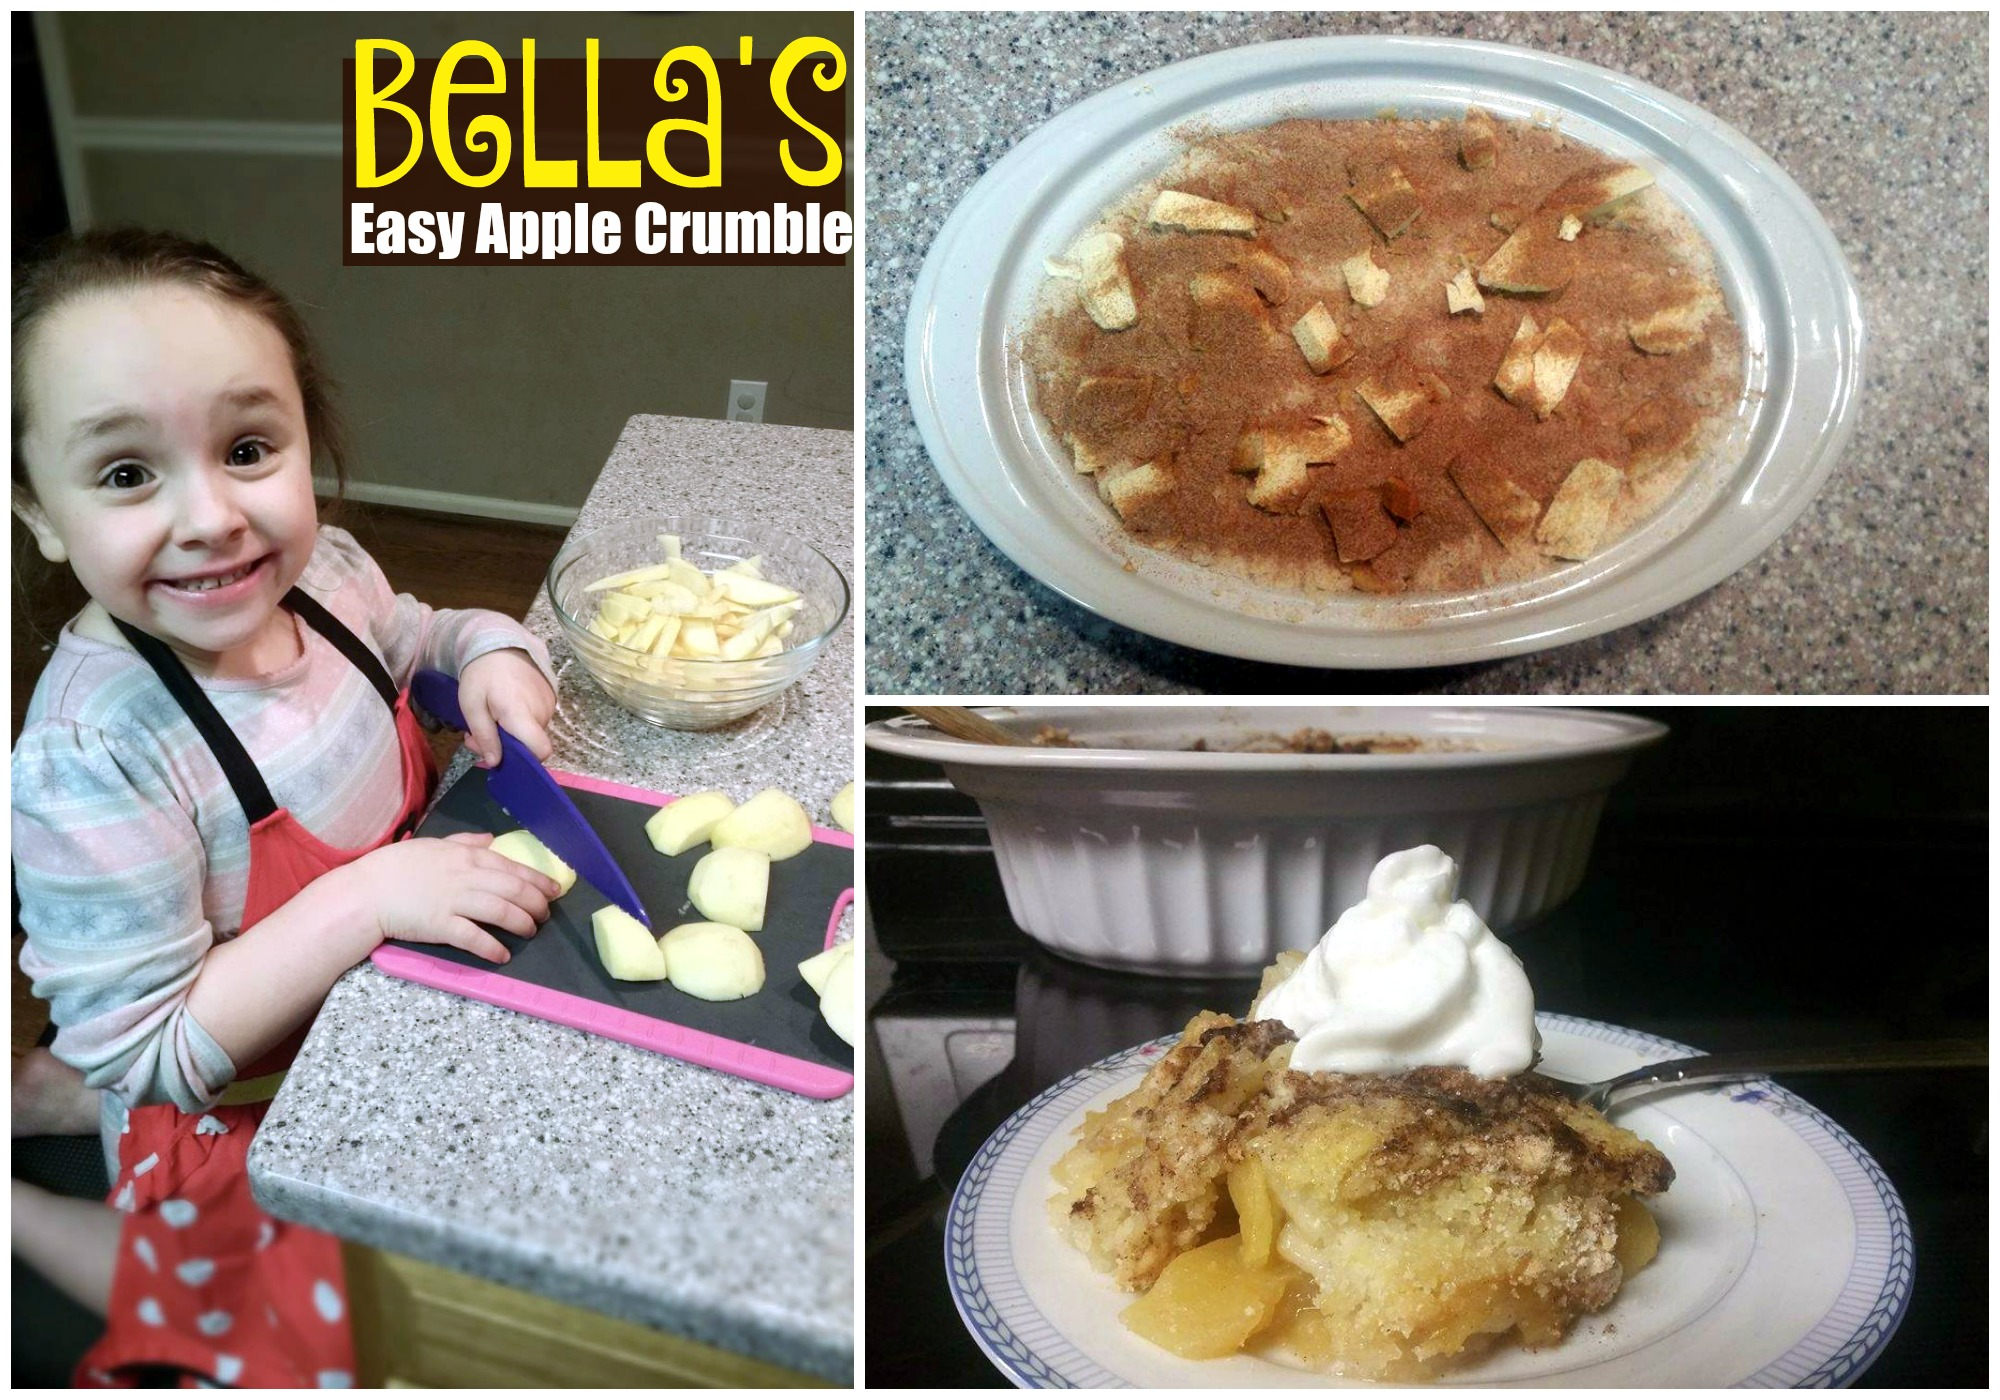 Bella's Easy Apple Crumble